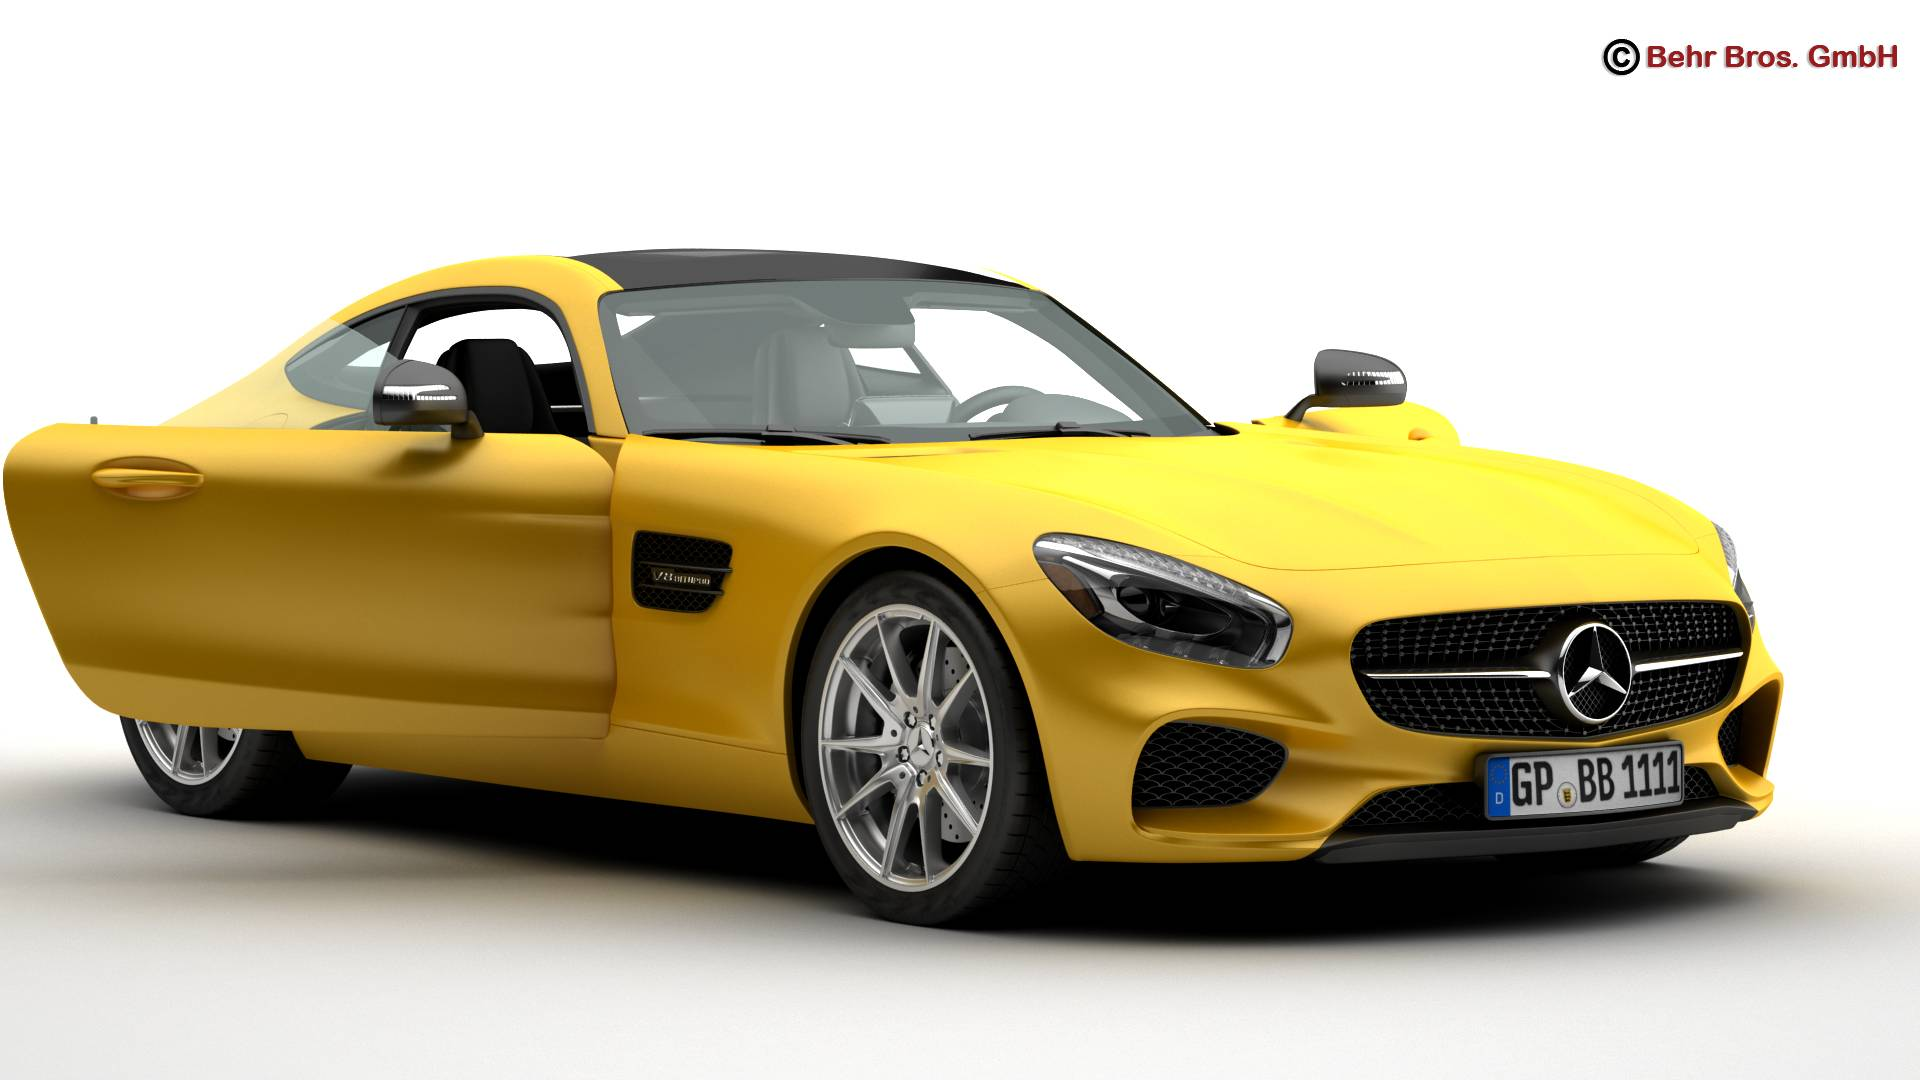 mercedes amg gt 2015 eu and us version 3d model 3ds max fbx c4d lwo ma mb obj 210114